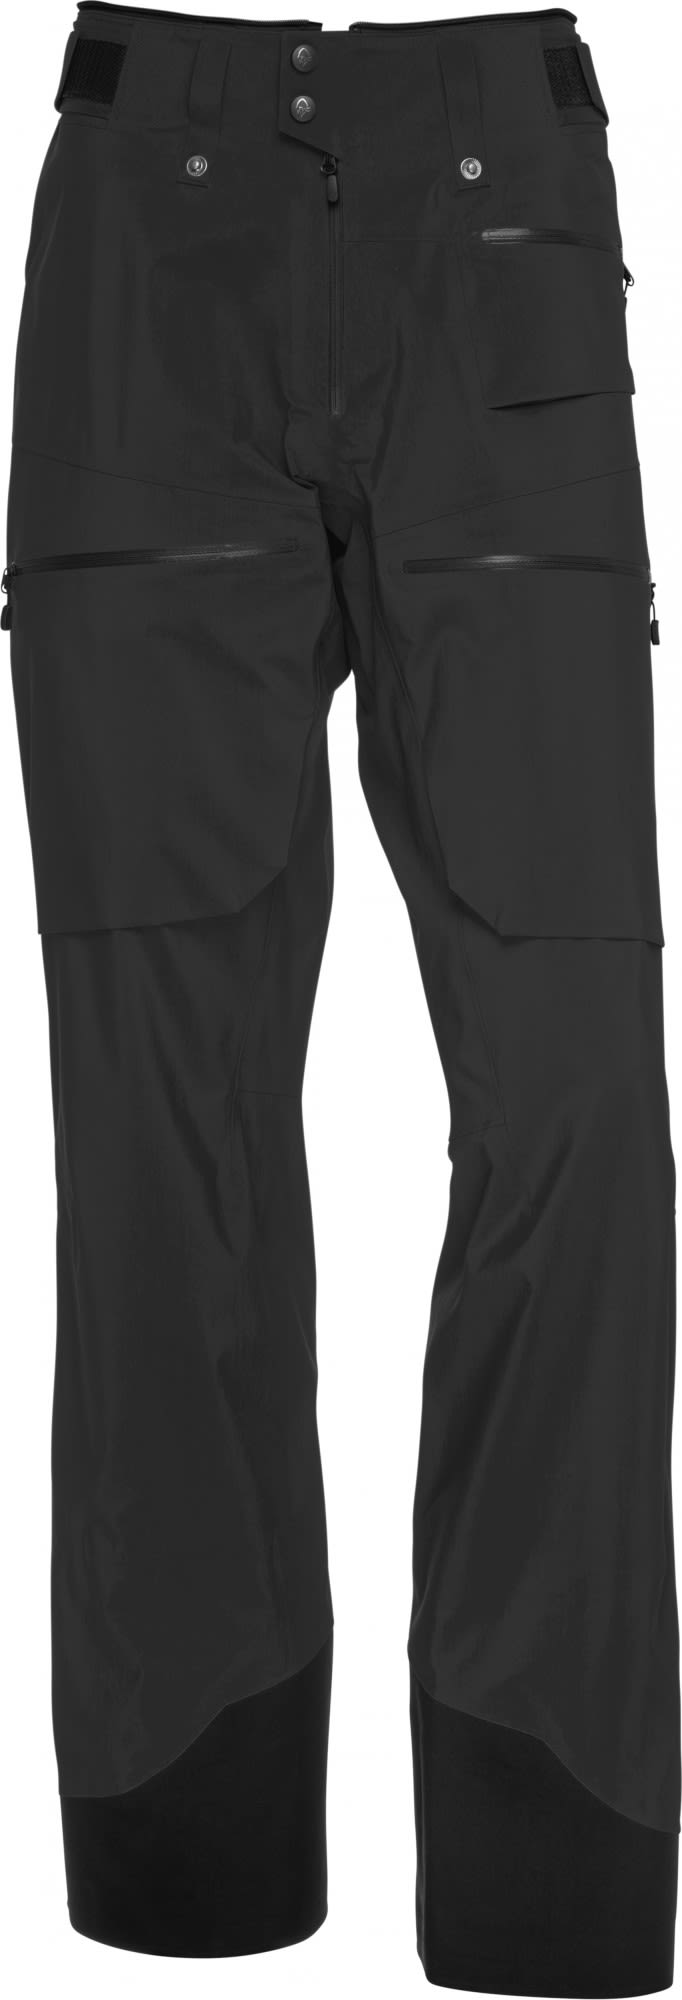 Norrona Lofoten Gore-Tex Pro Light Pants Schwarz, Male Gore-Tex® XL -Farbe Cavi